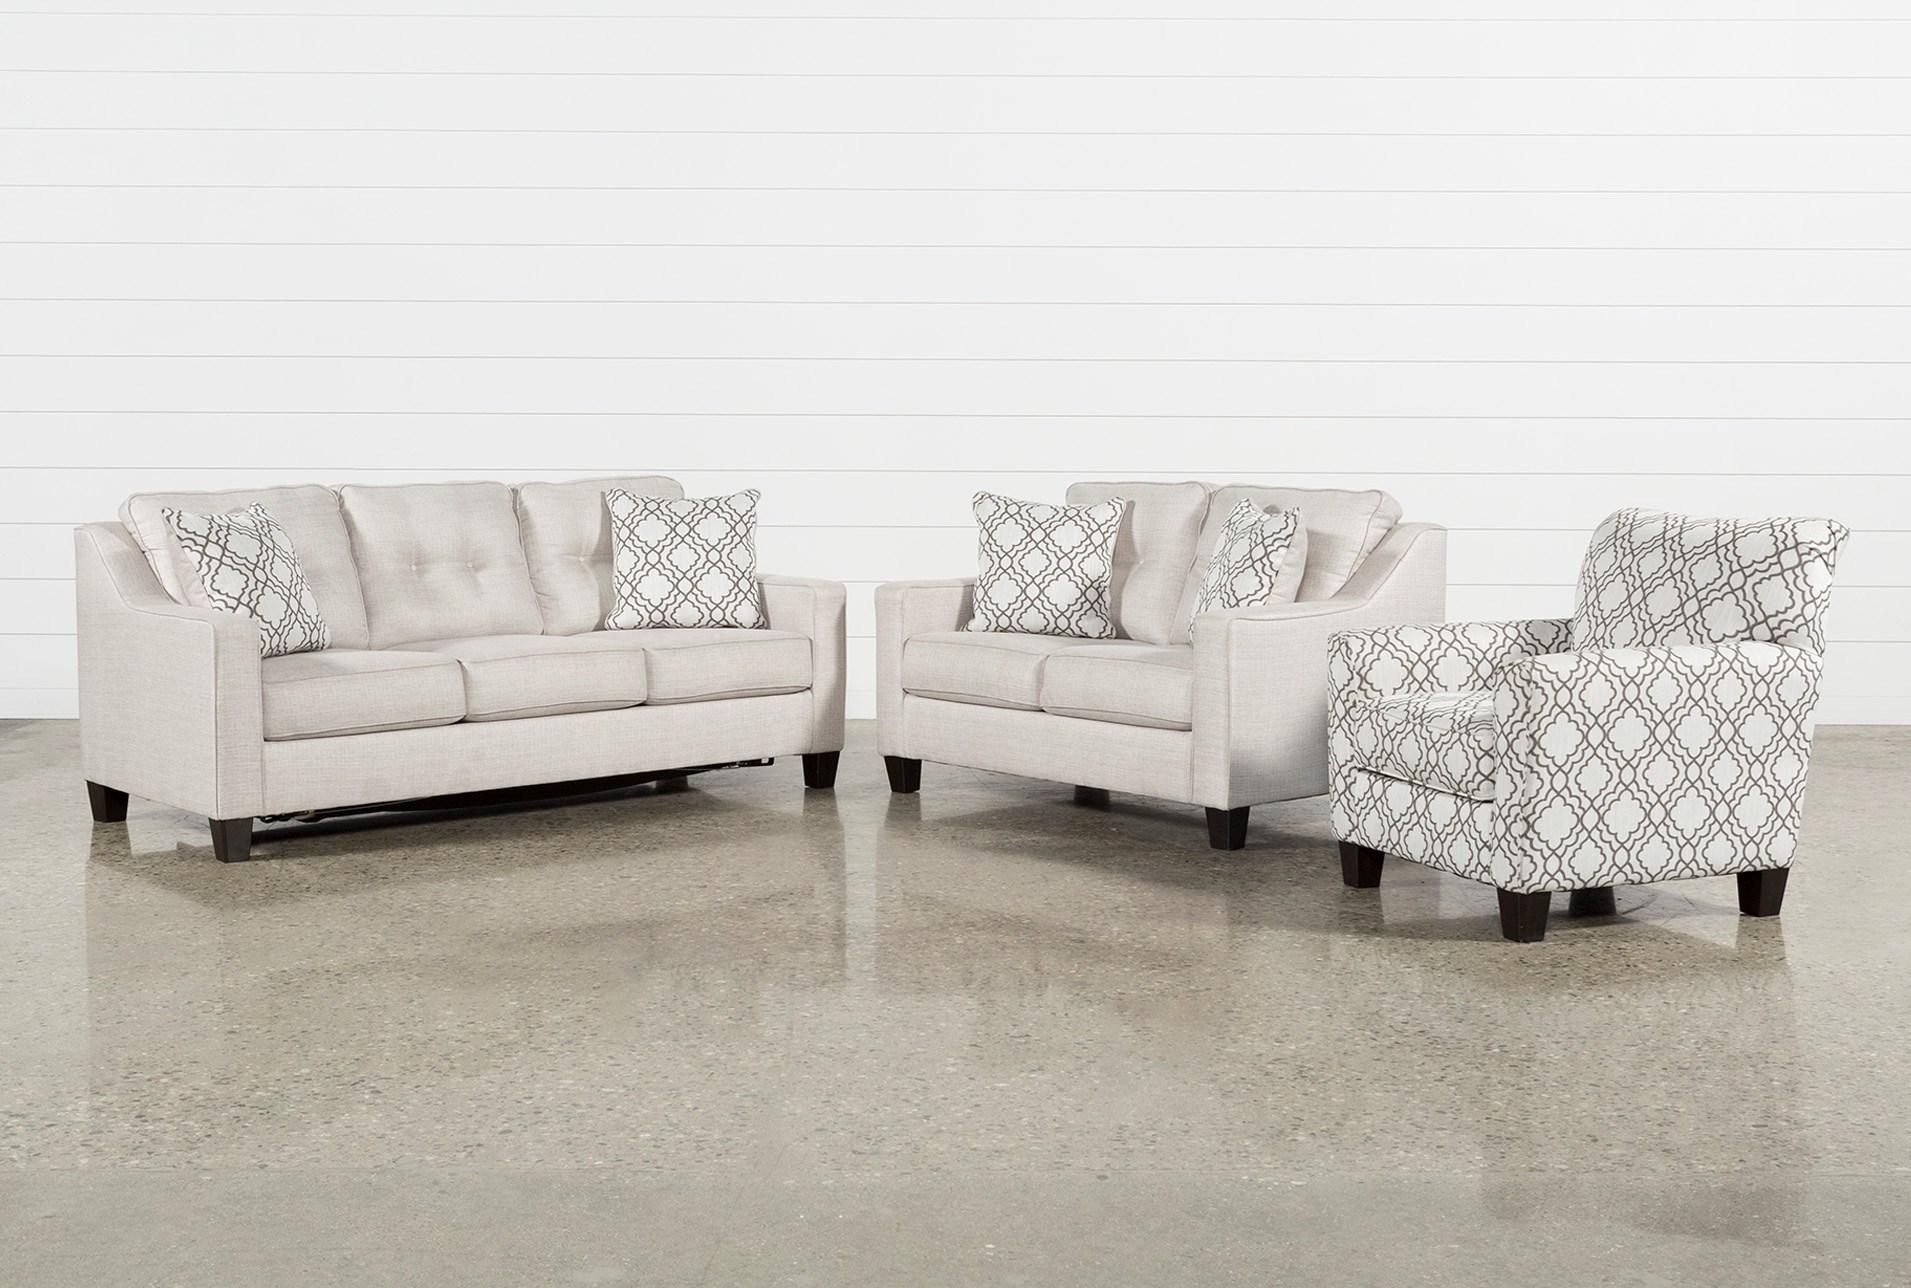 Linday park 3 piece living room set with accent chair qty 1 has been successfully added to your cart